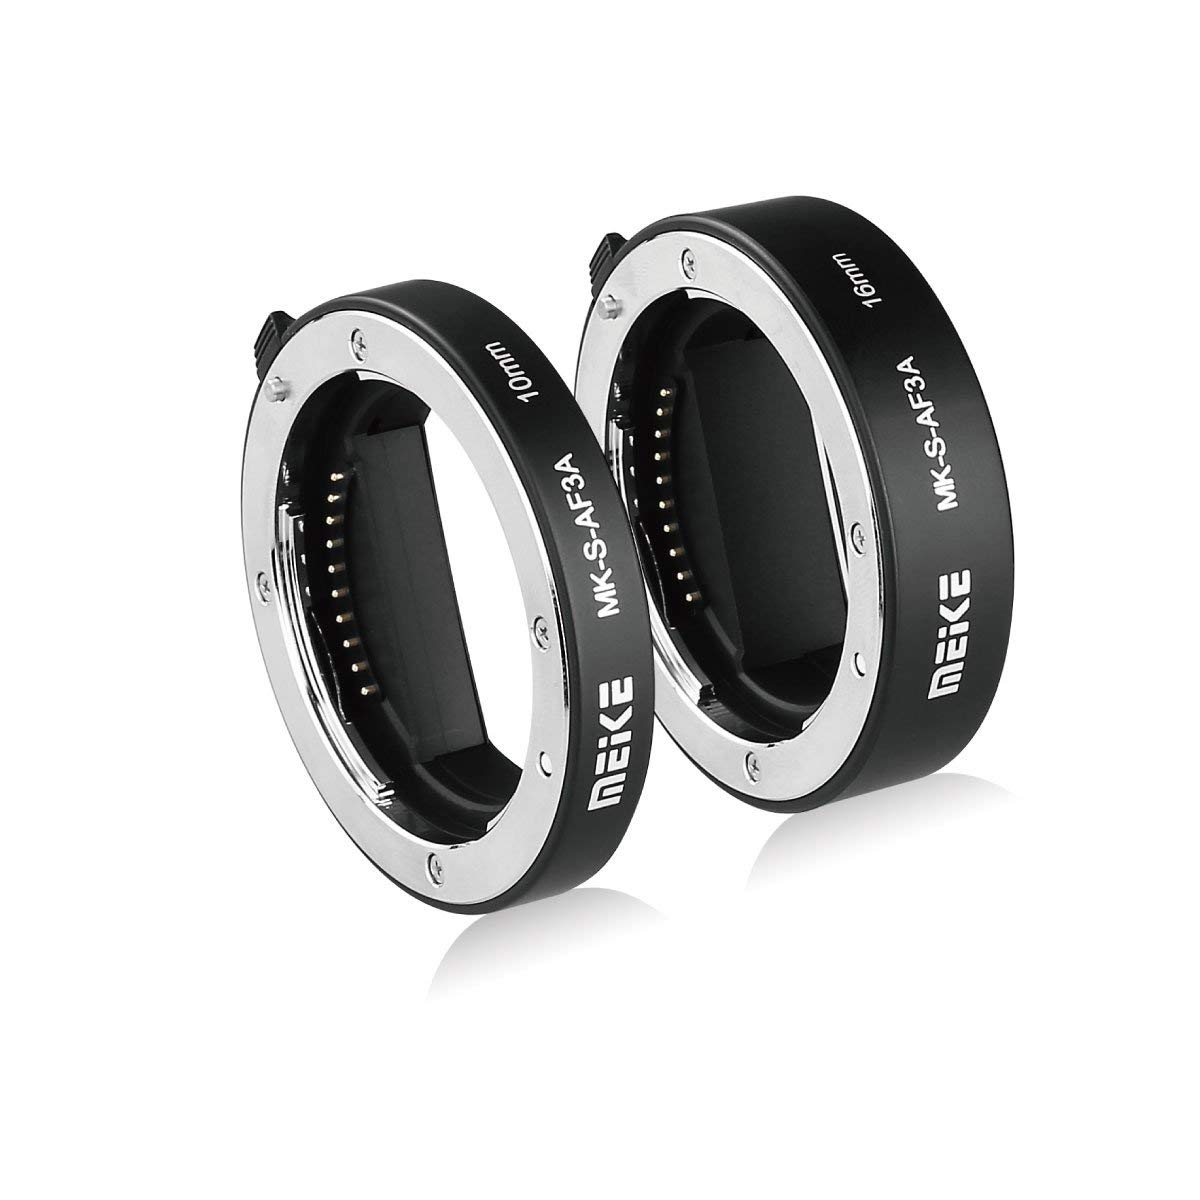 Gadget Place 55mm to 58mm Adapter Ring